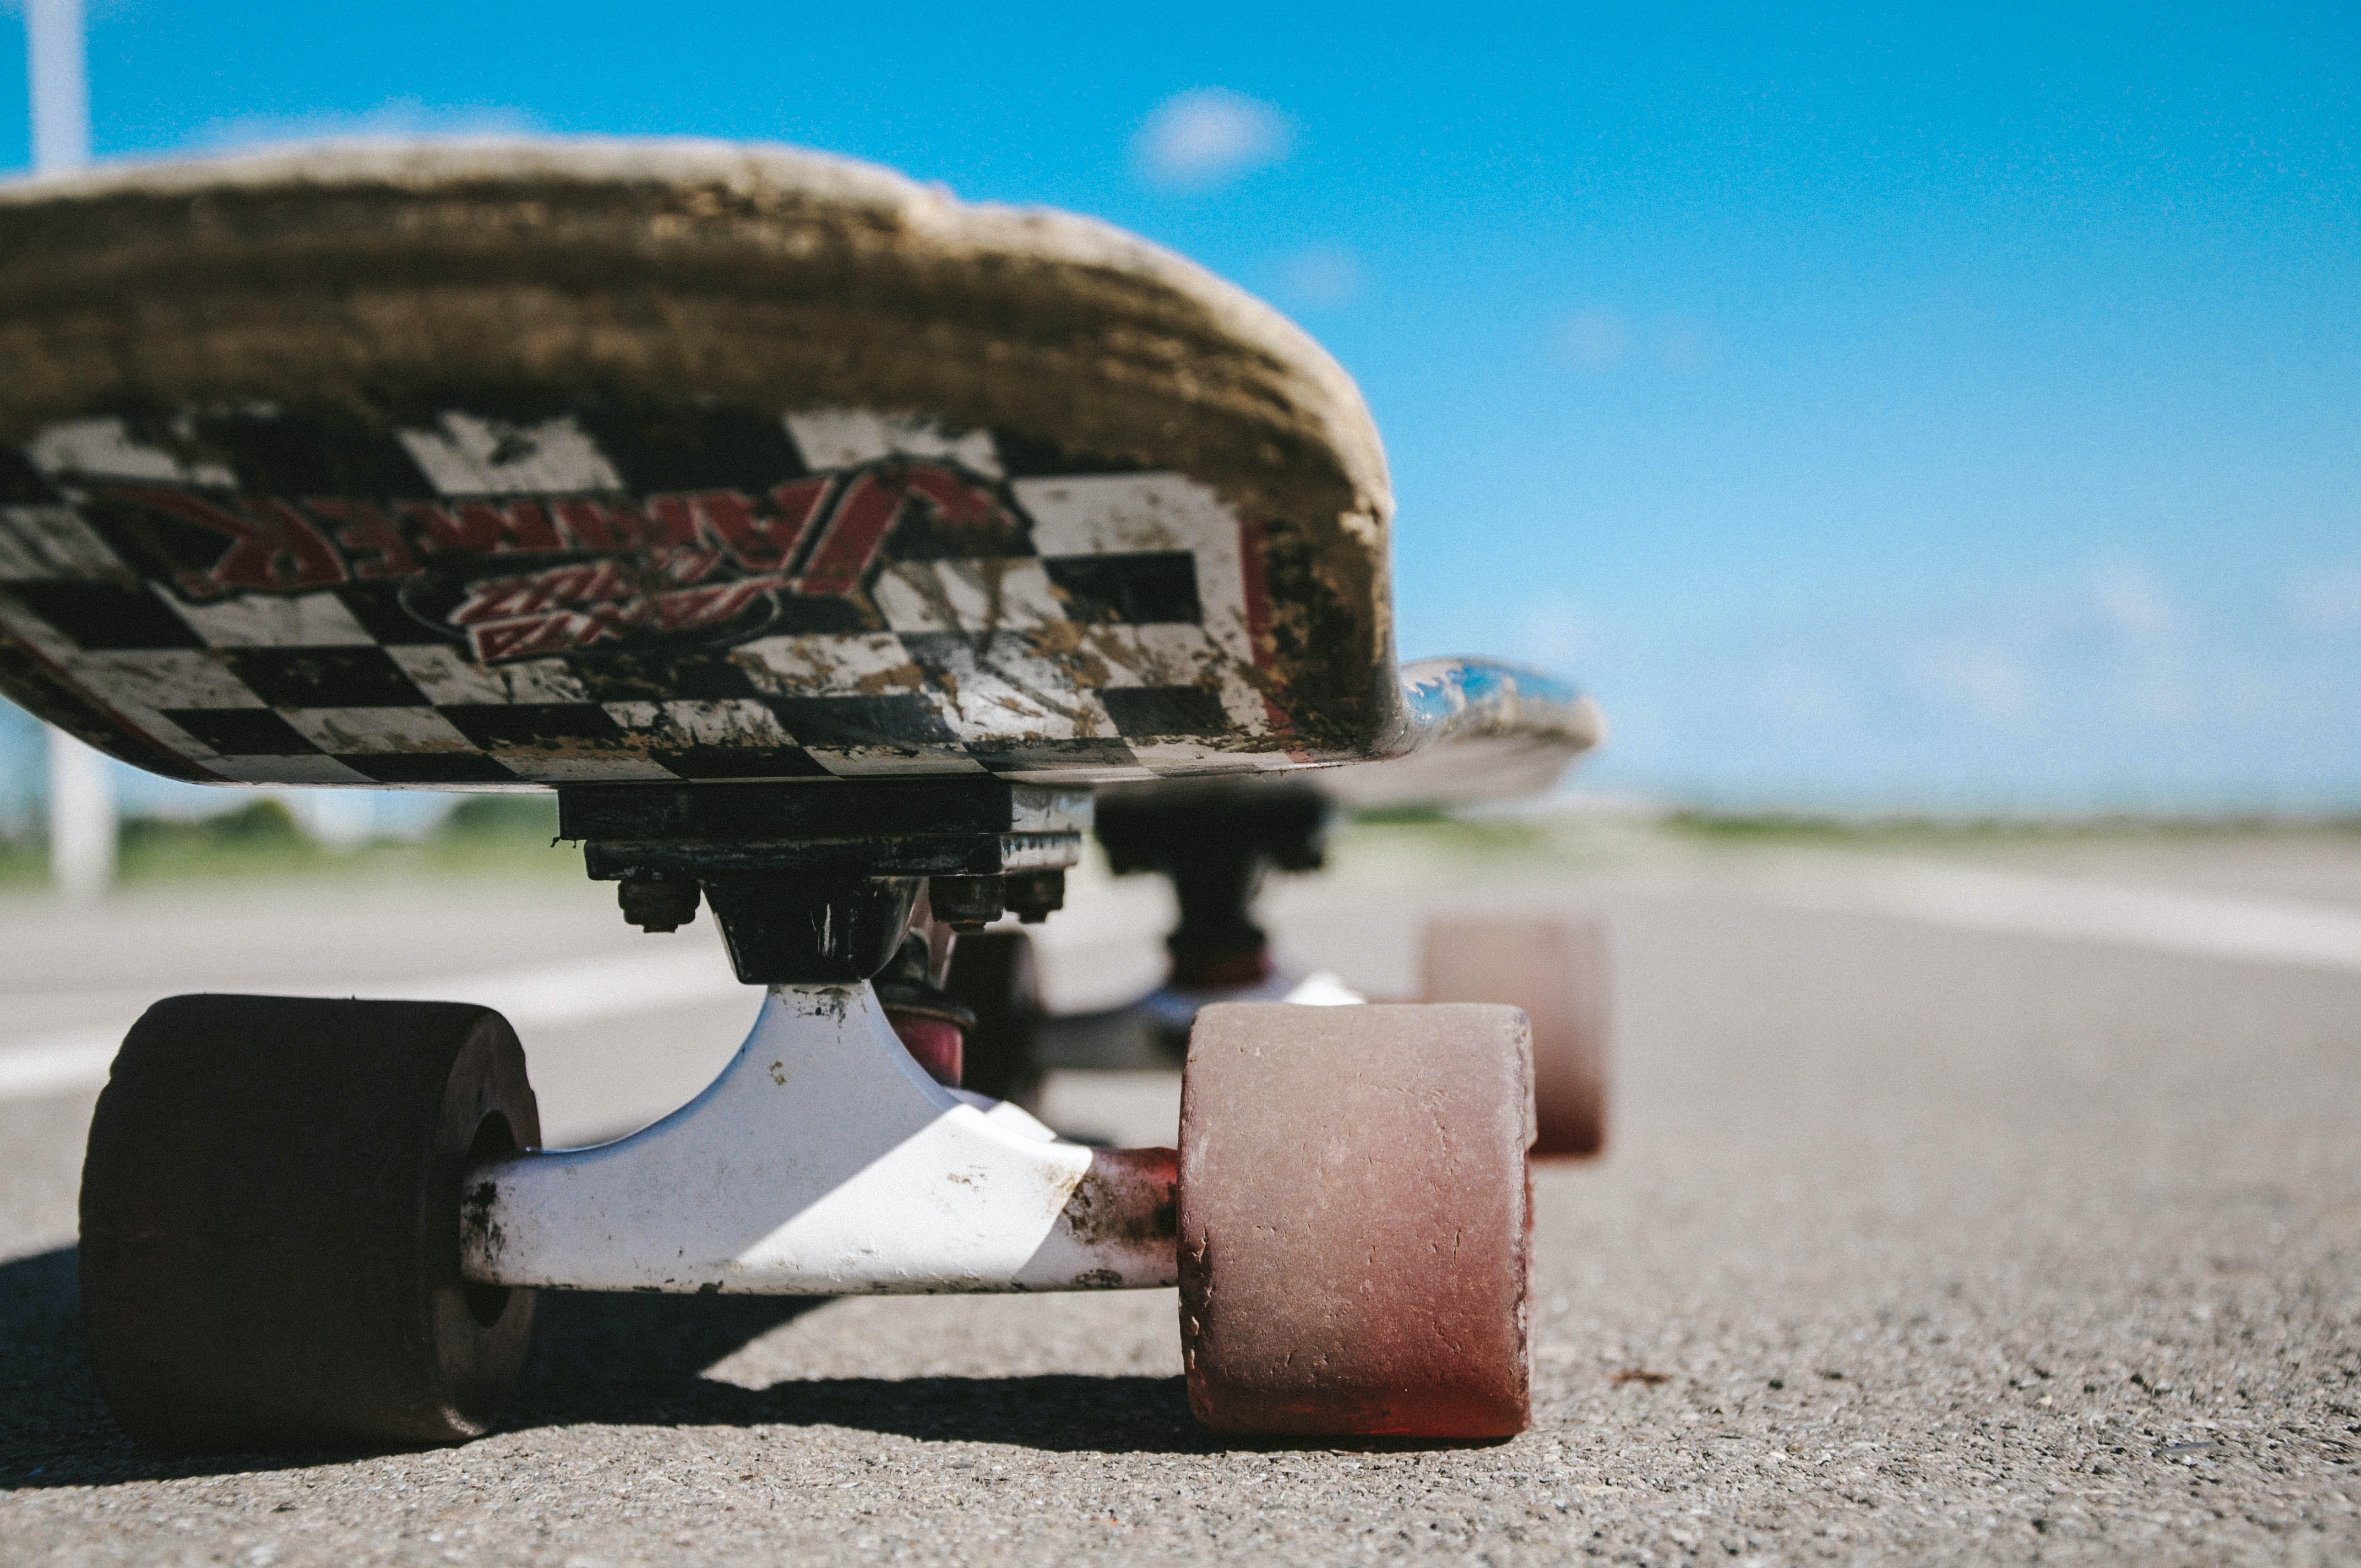 black and multicolored skateboard on gray road